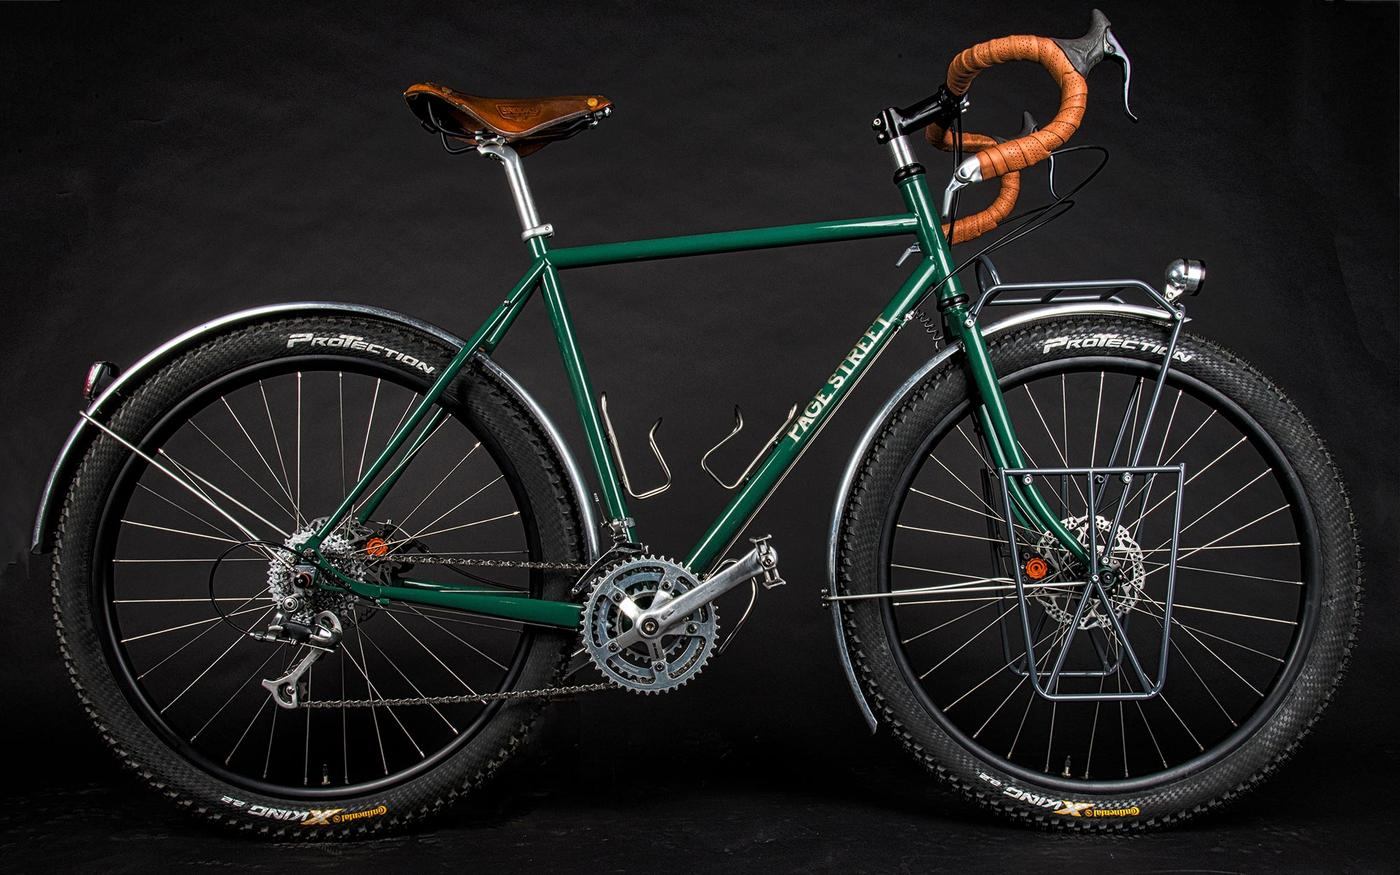 Introducing Page Street Cycles by Christopher Igleheart and Joseph Ahearne